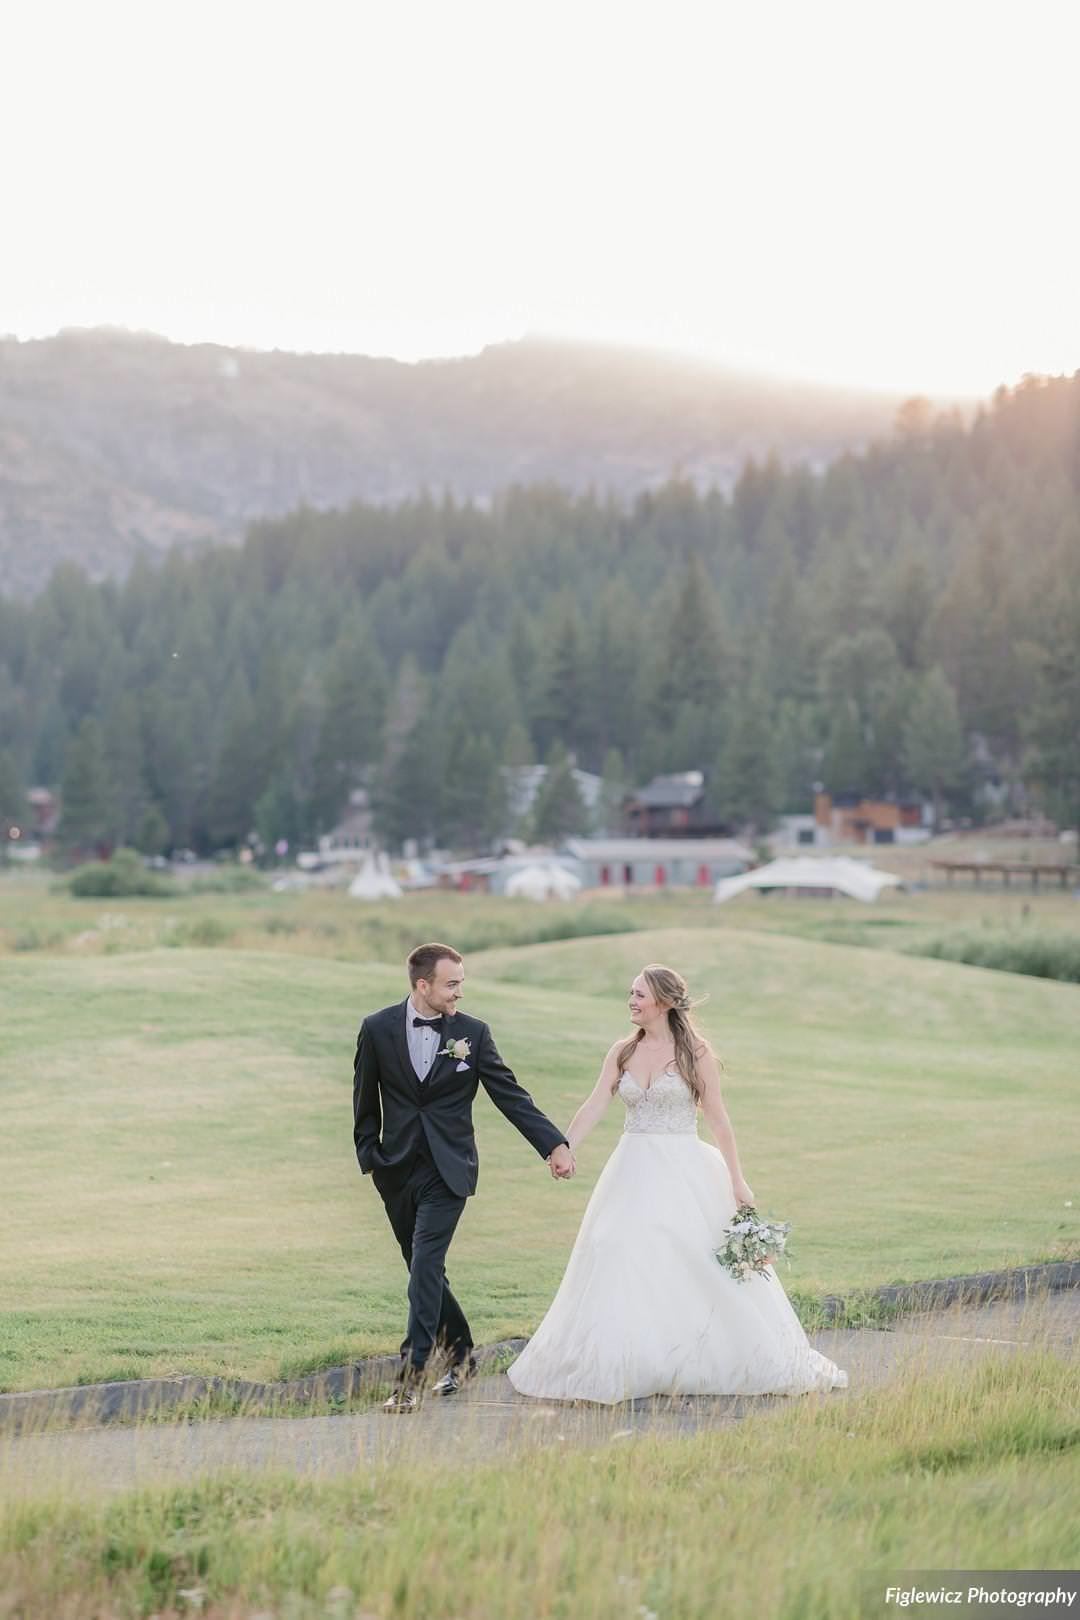 Garden_Tinsley_FiglewiczPhotography_LakeTahoeWeddingSquawValleyCreekTaylorBrendan00149_big